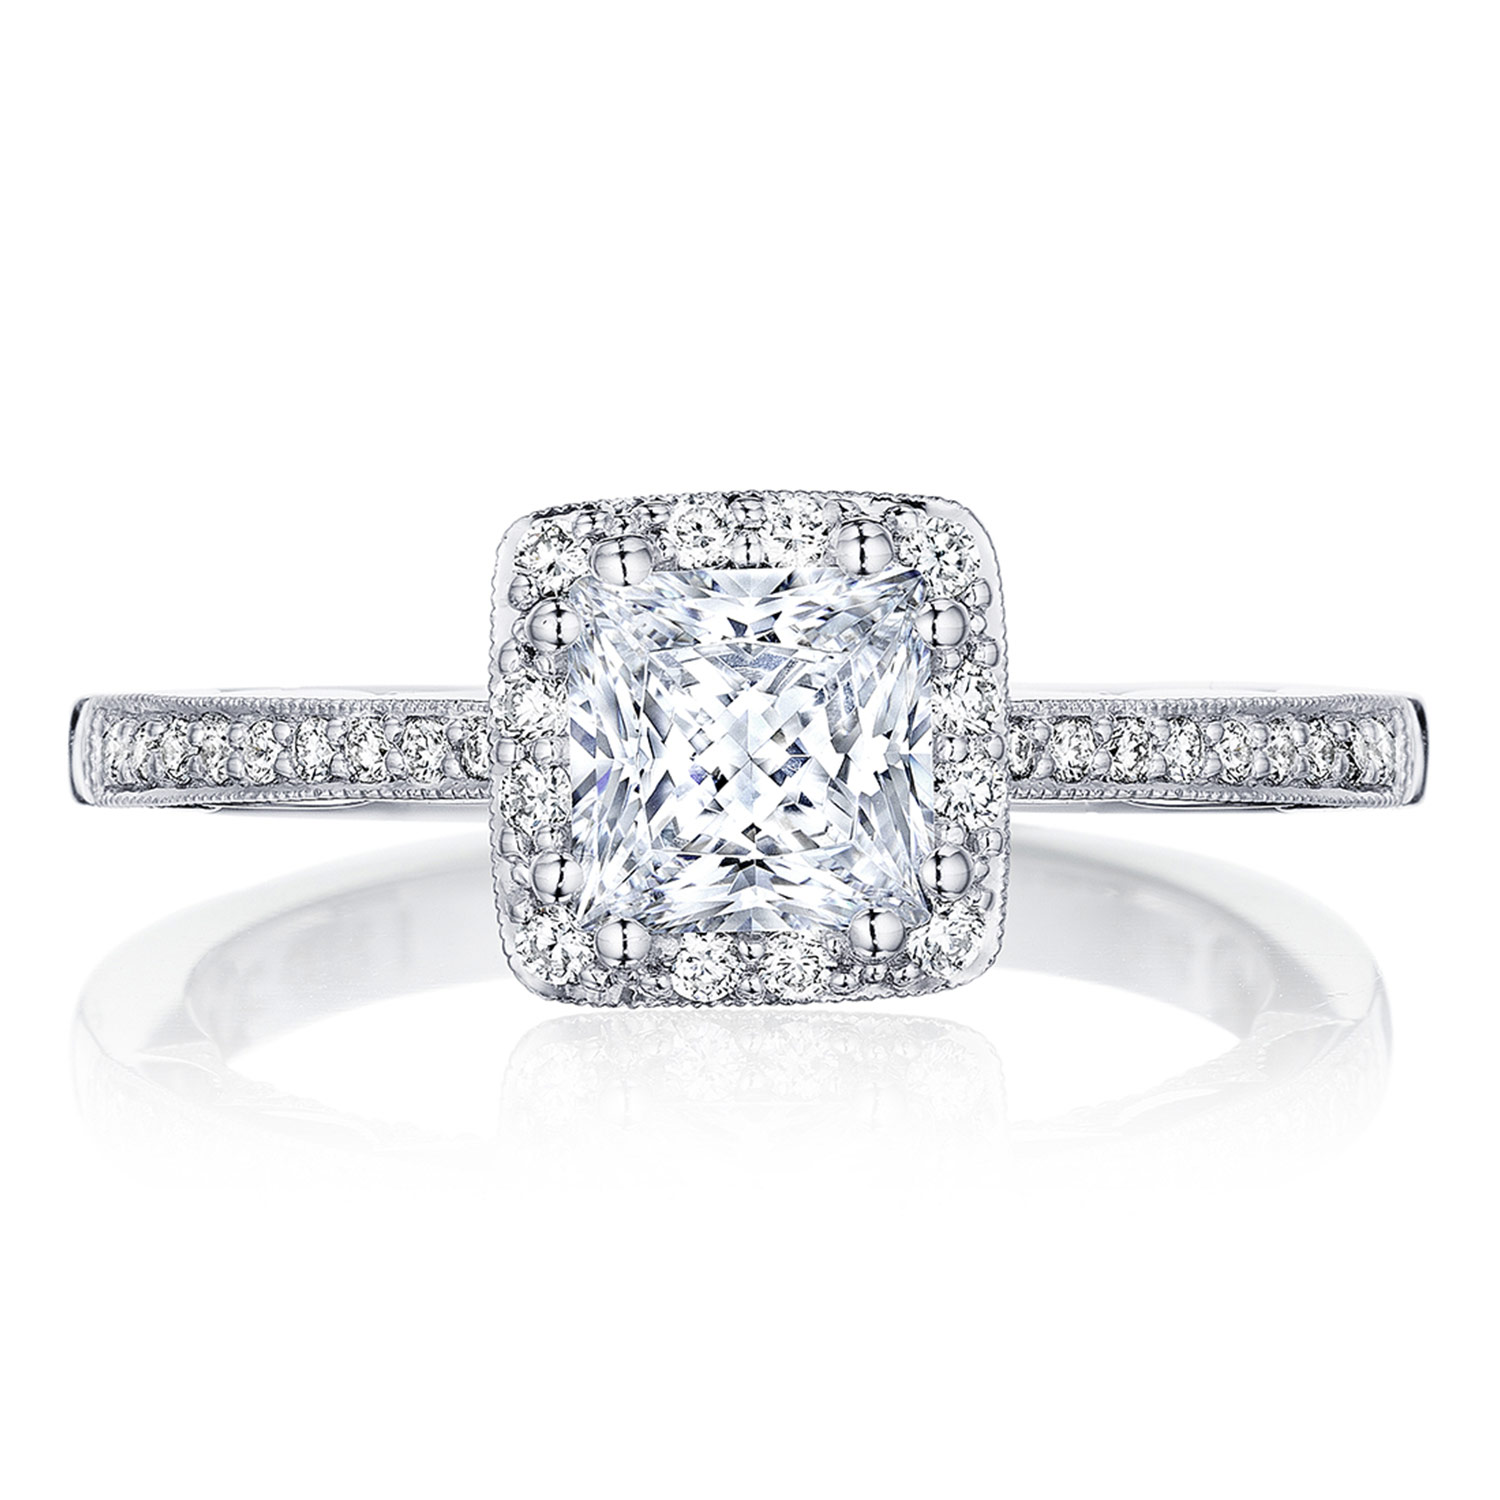 https://www.ackermanjewelers.com/upload/product/P103PR.jpg